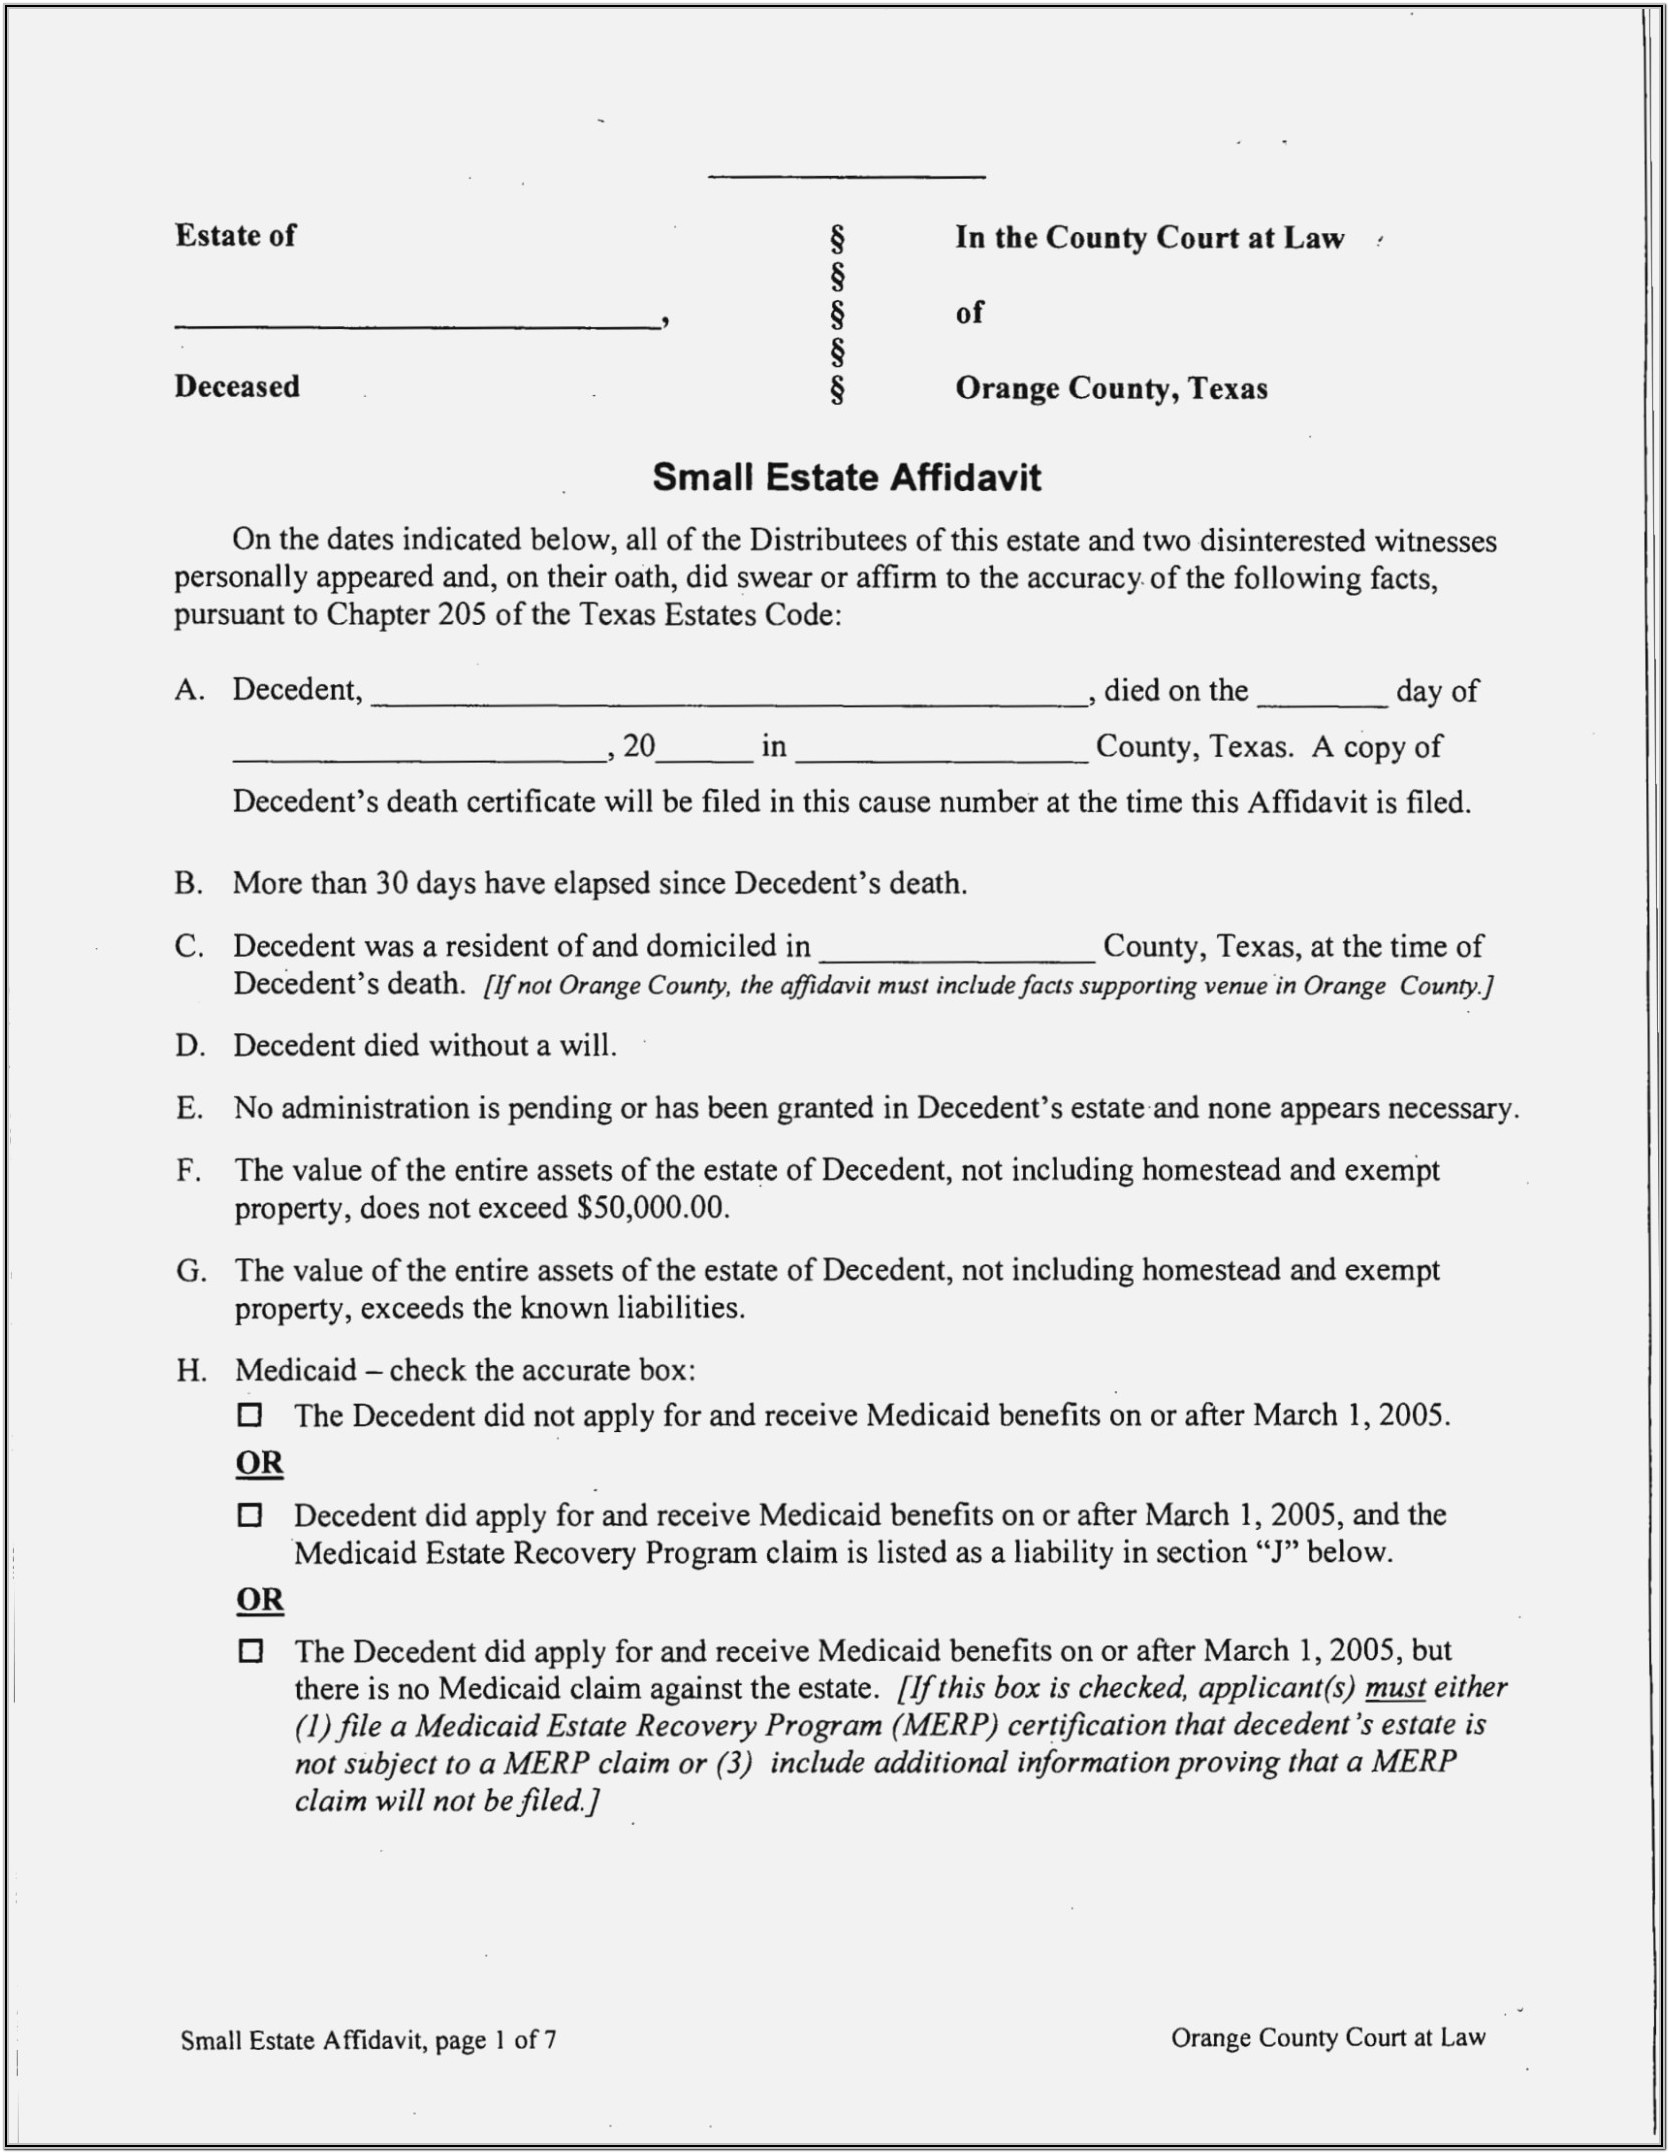 Small Claims Court Affidavit Form